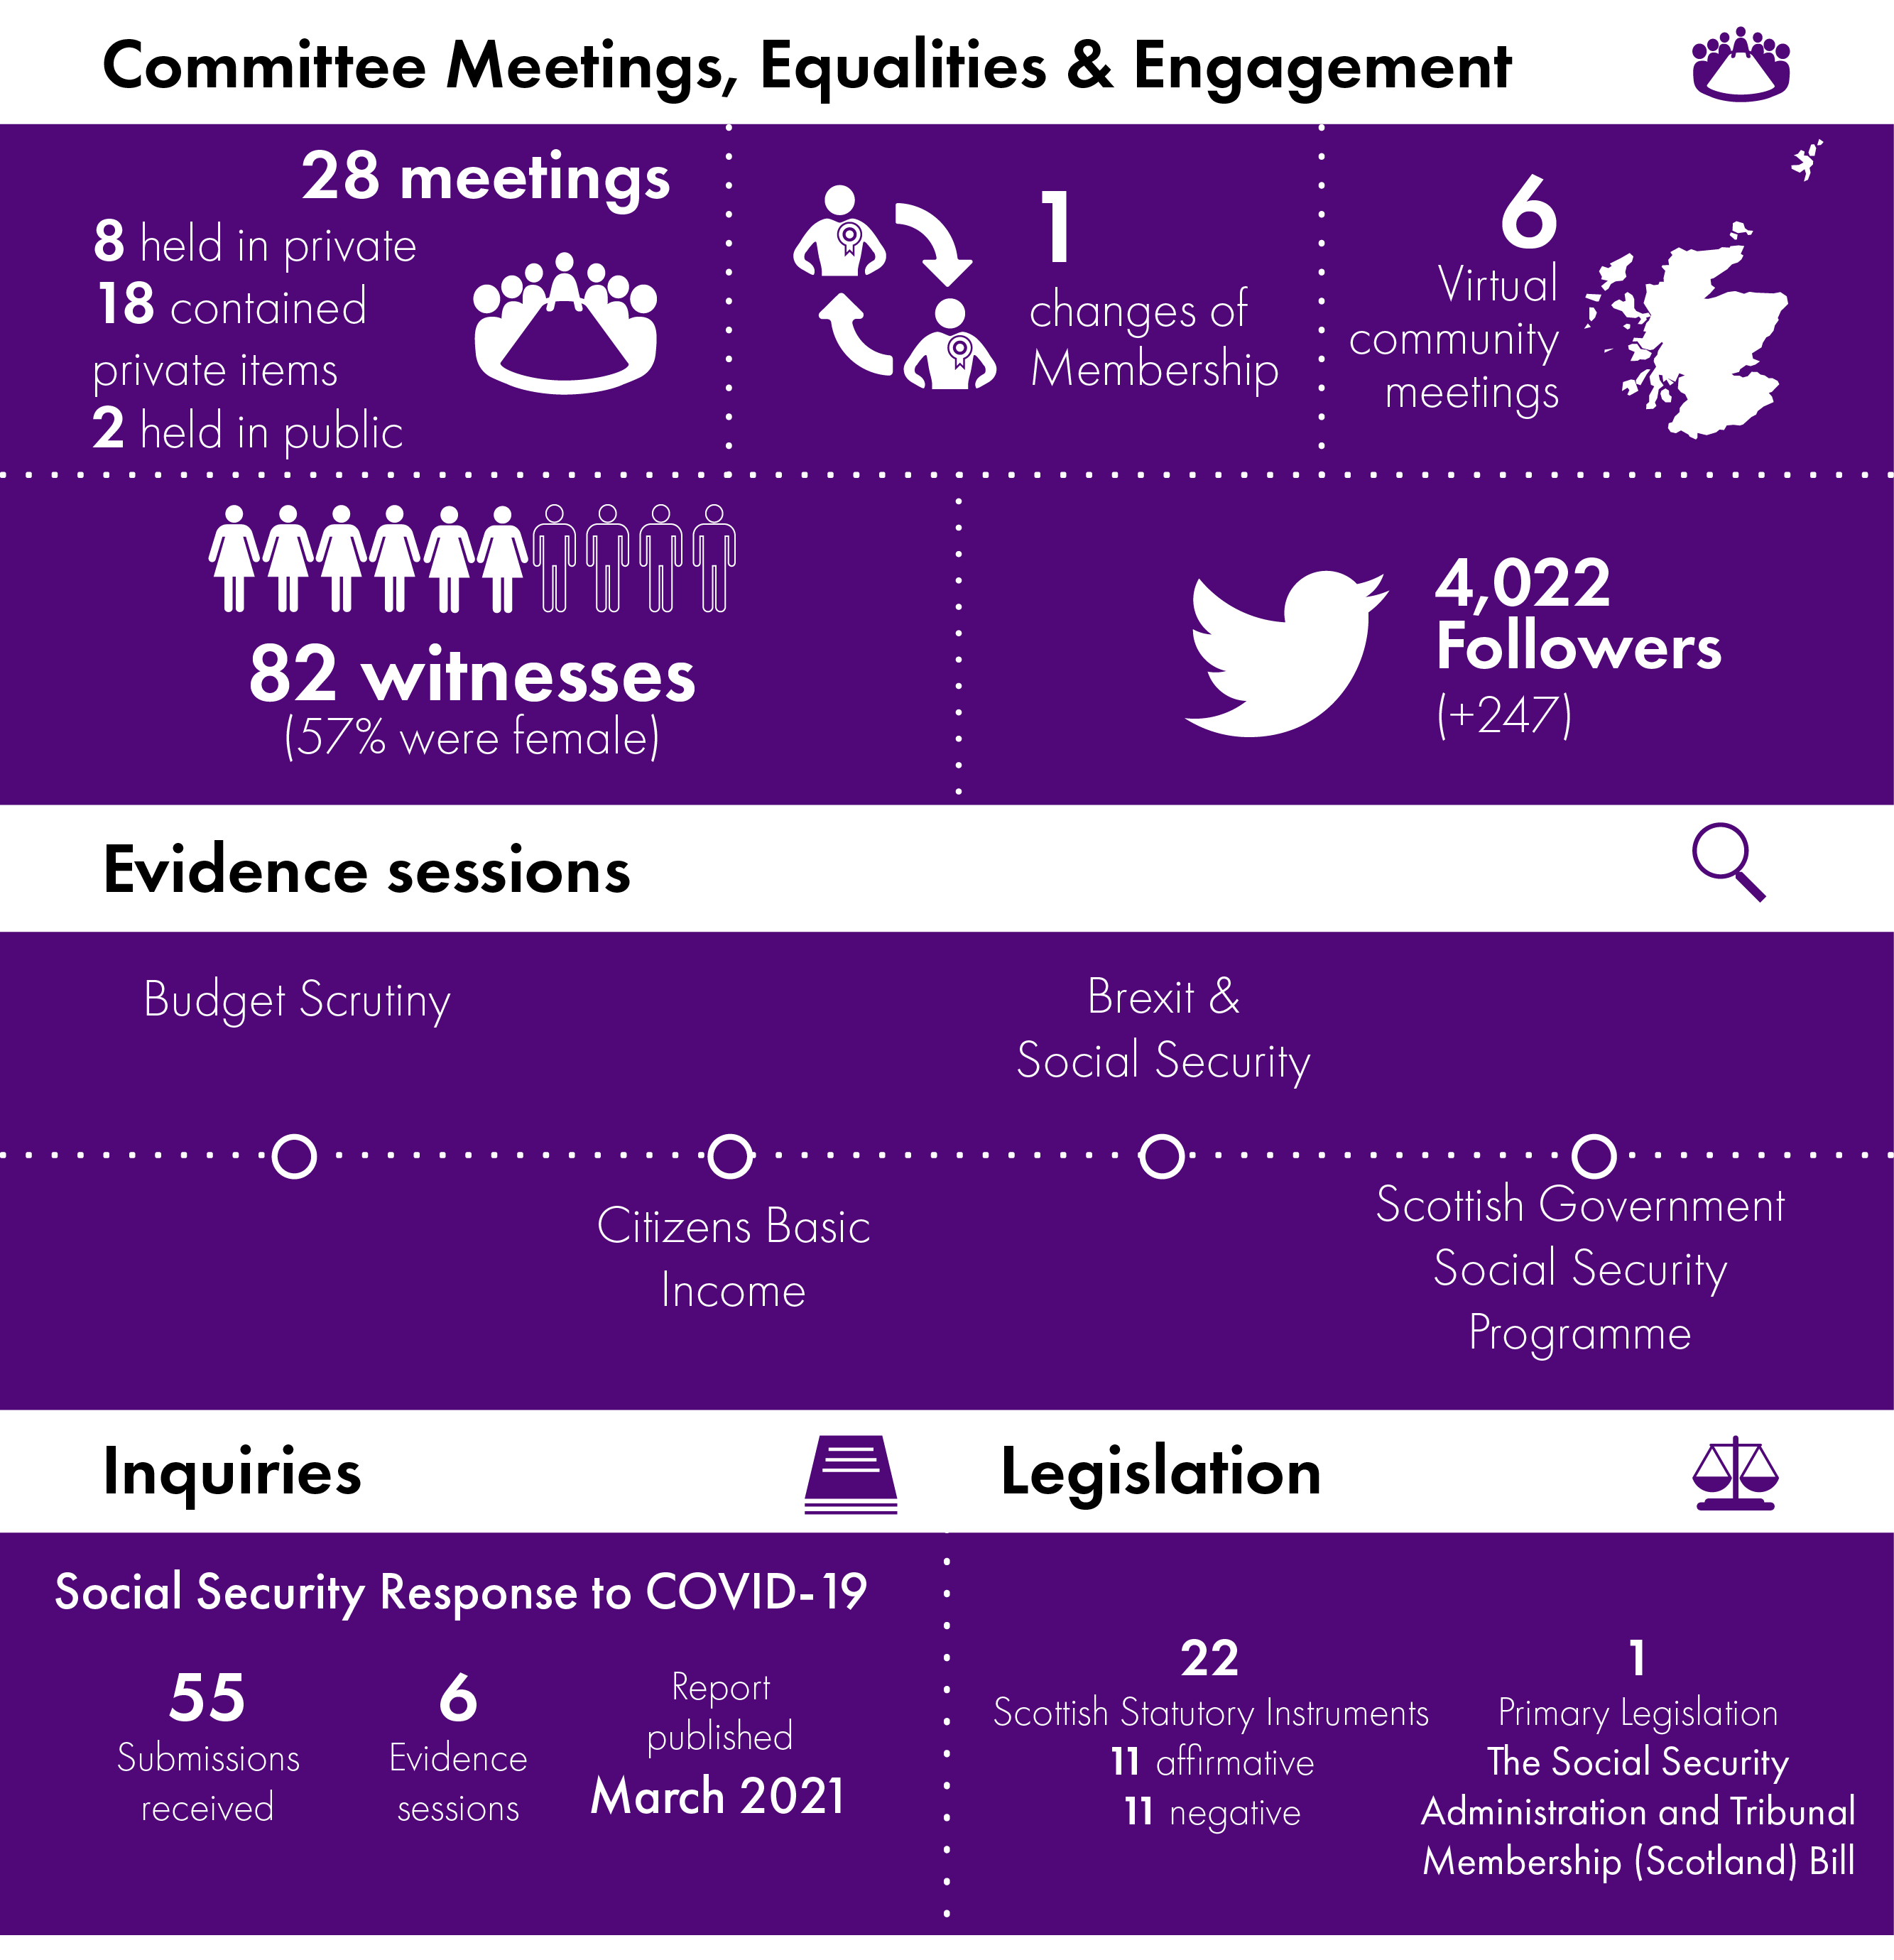 Infographic summarising the work of the Committee in 2020-21. Statistics are repeated through the report.